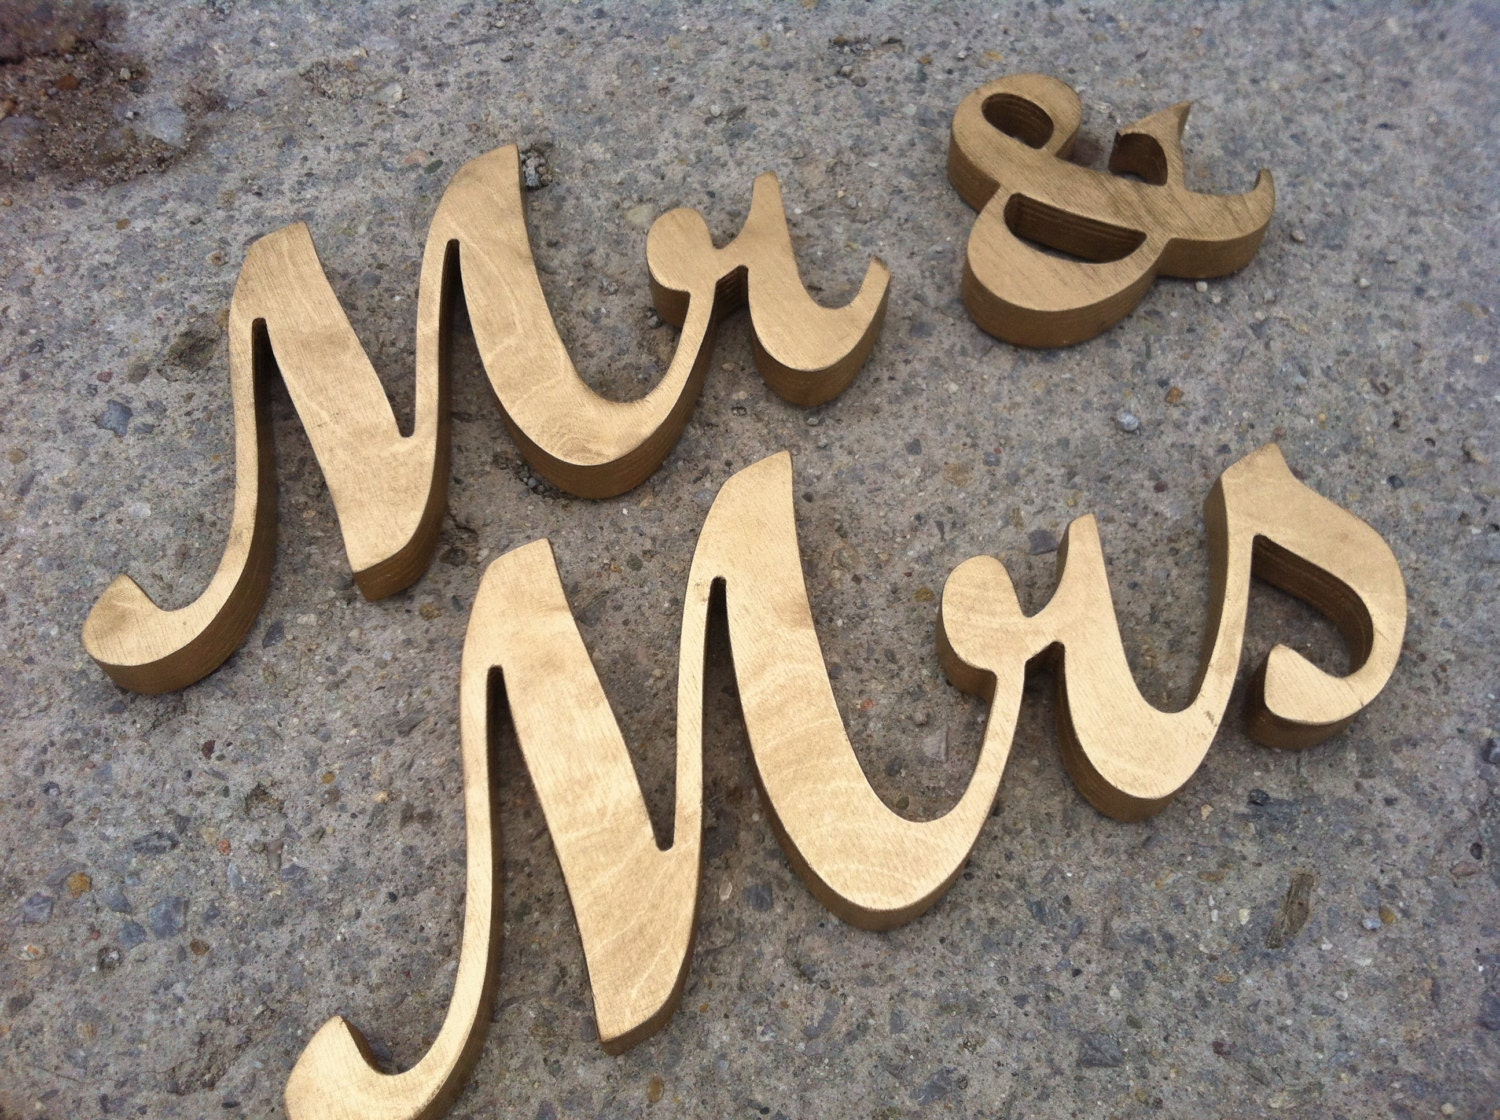 GOLD Mr. & Mrs. Wooden Freestanding Letters For Wedding Table